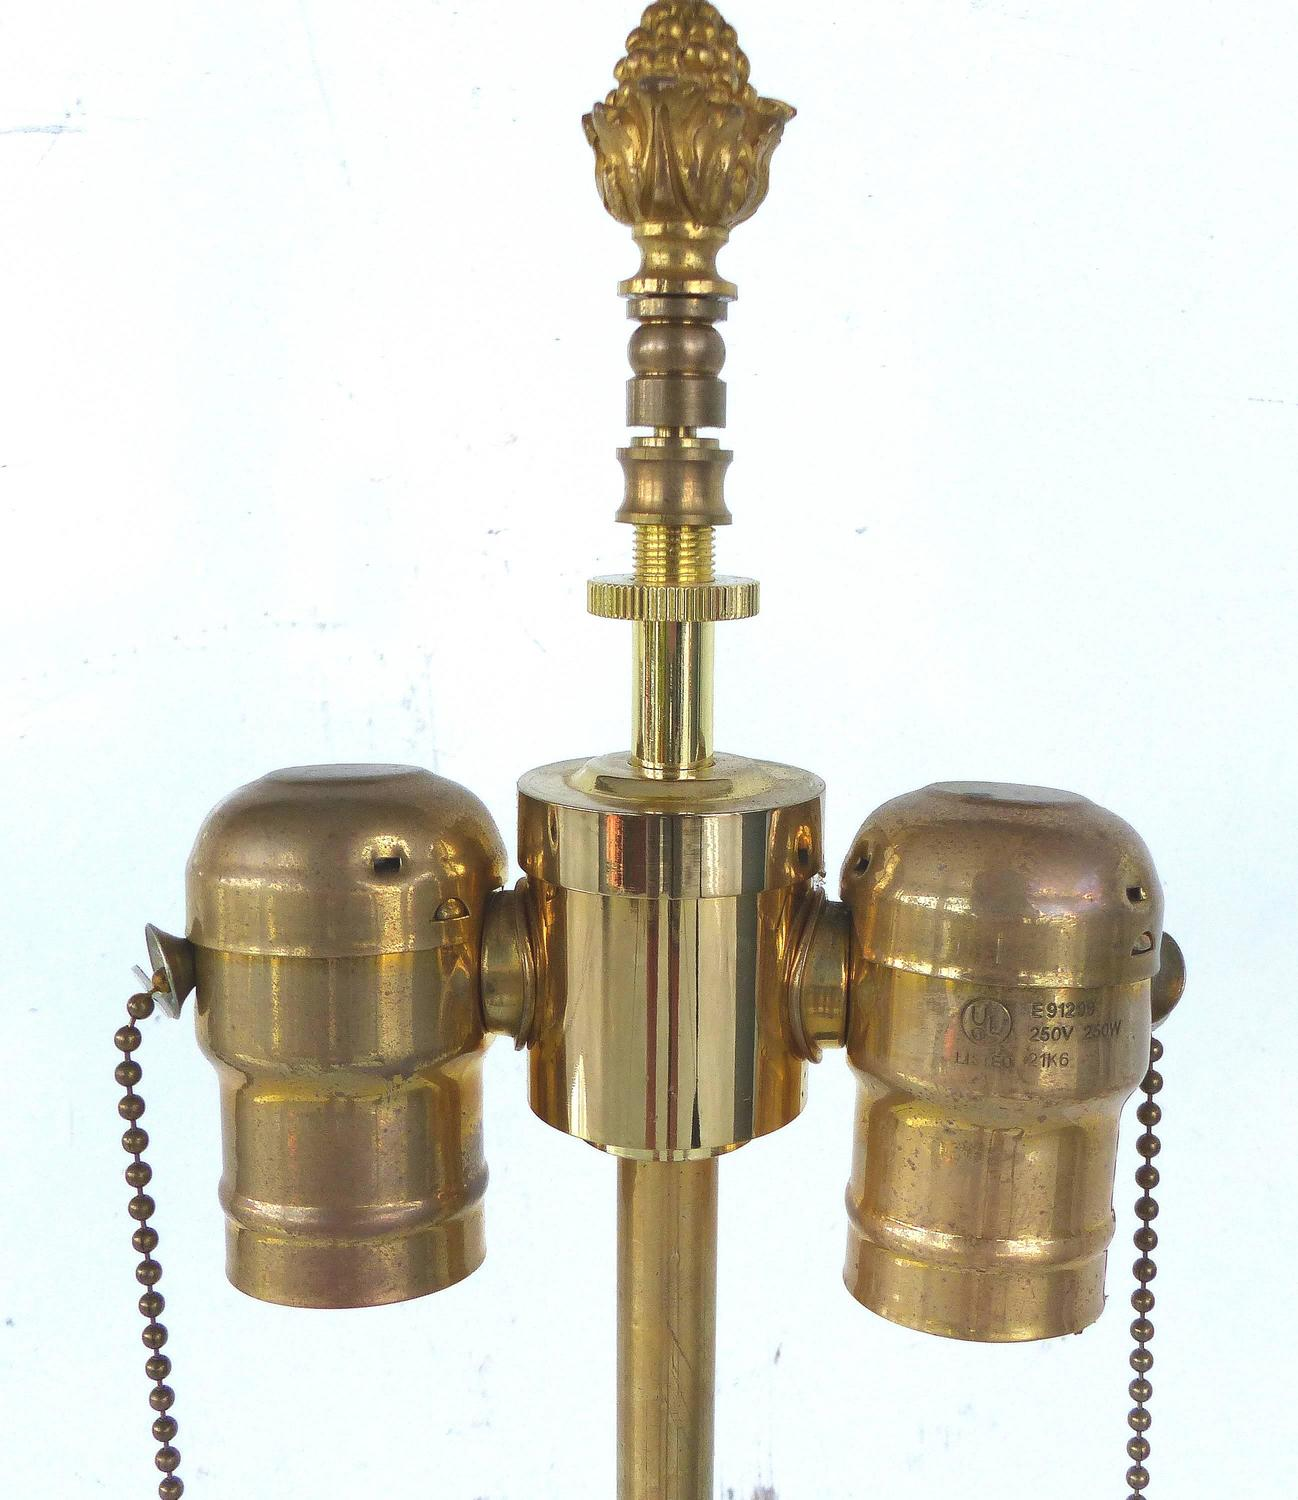 Table Lamp Repair Near Me Best Inspiration for Table Lamp